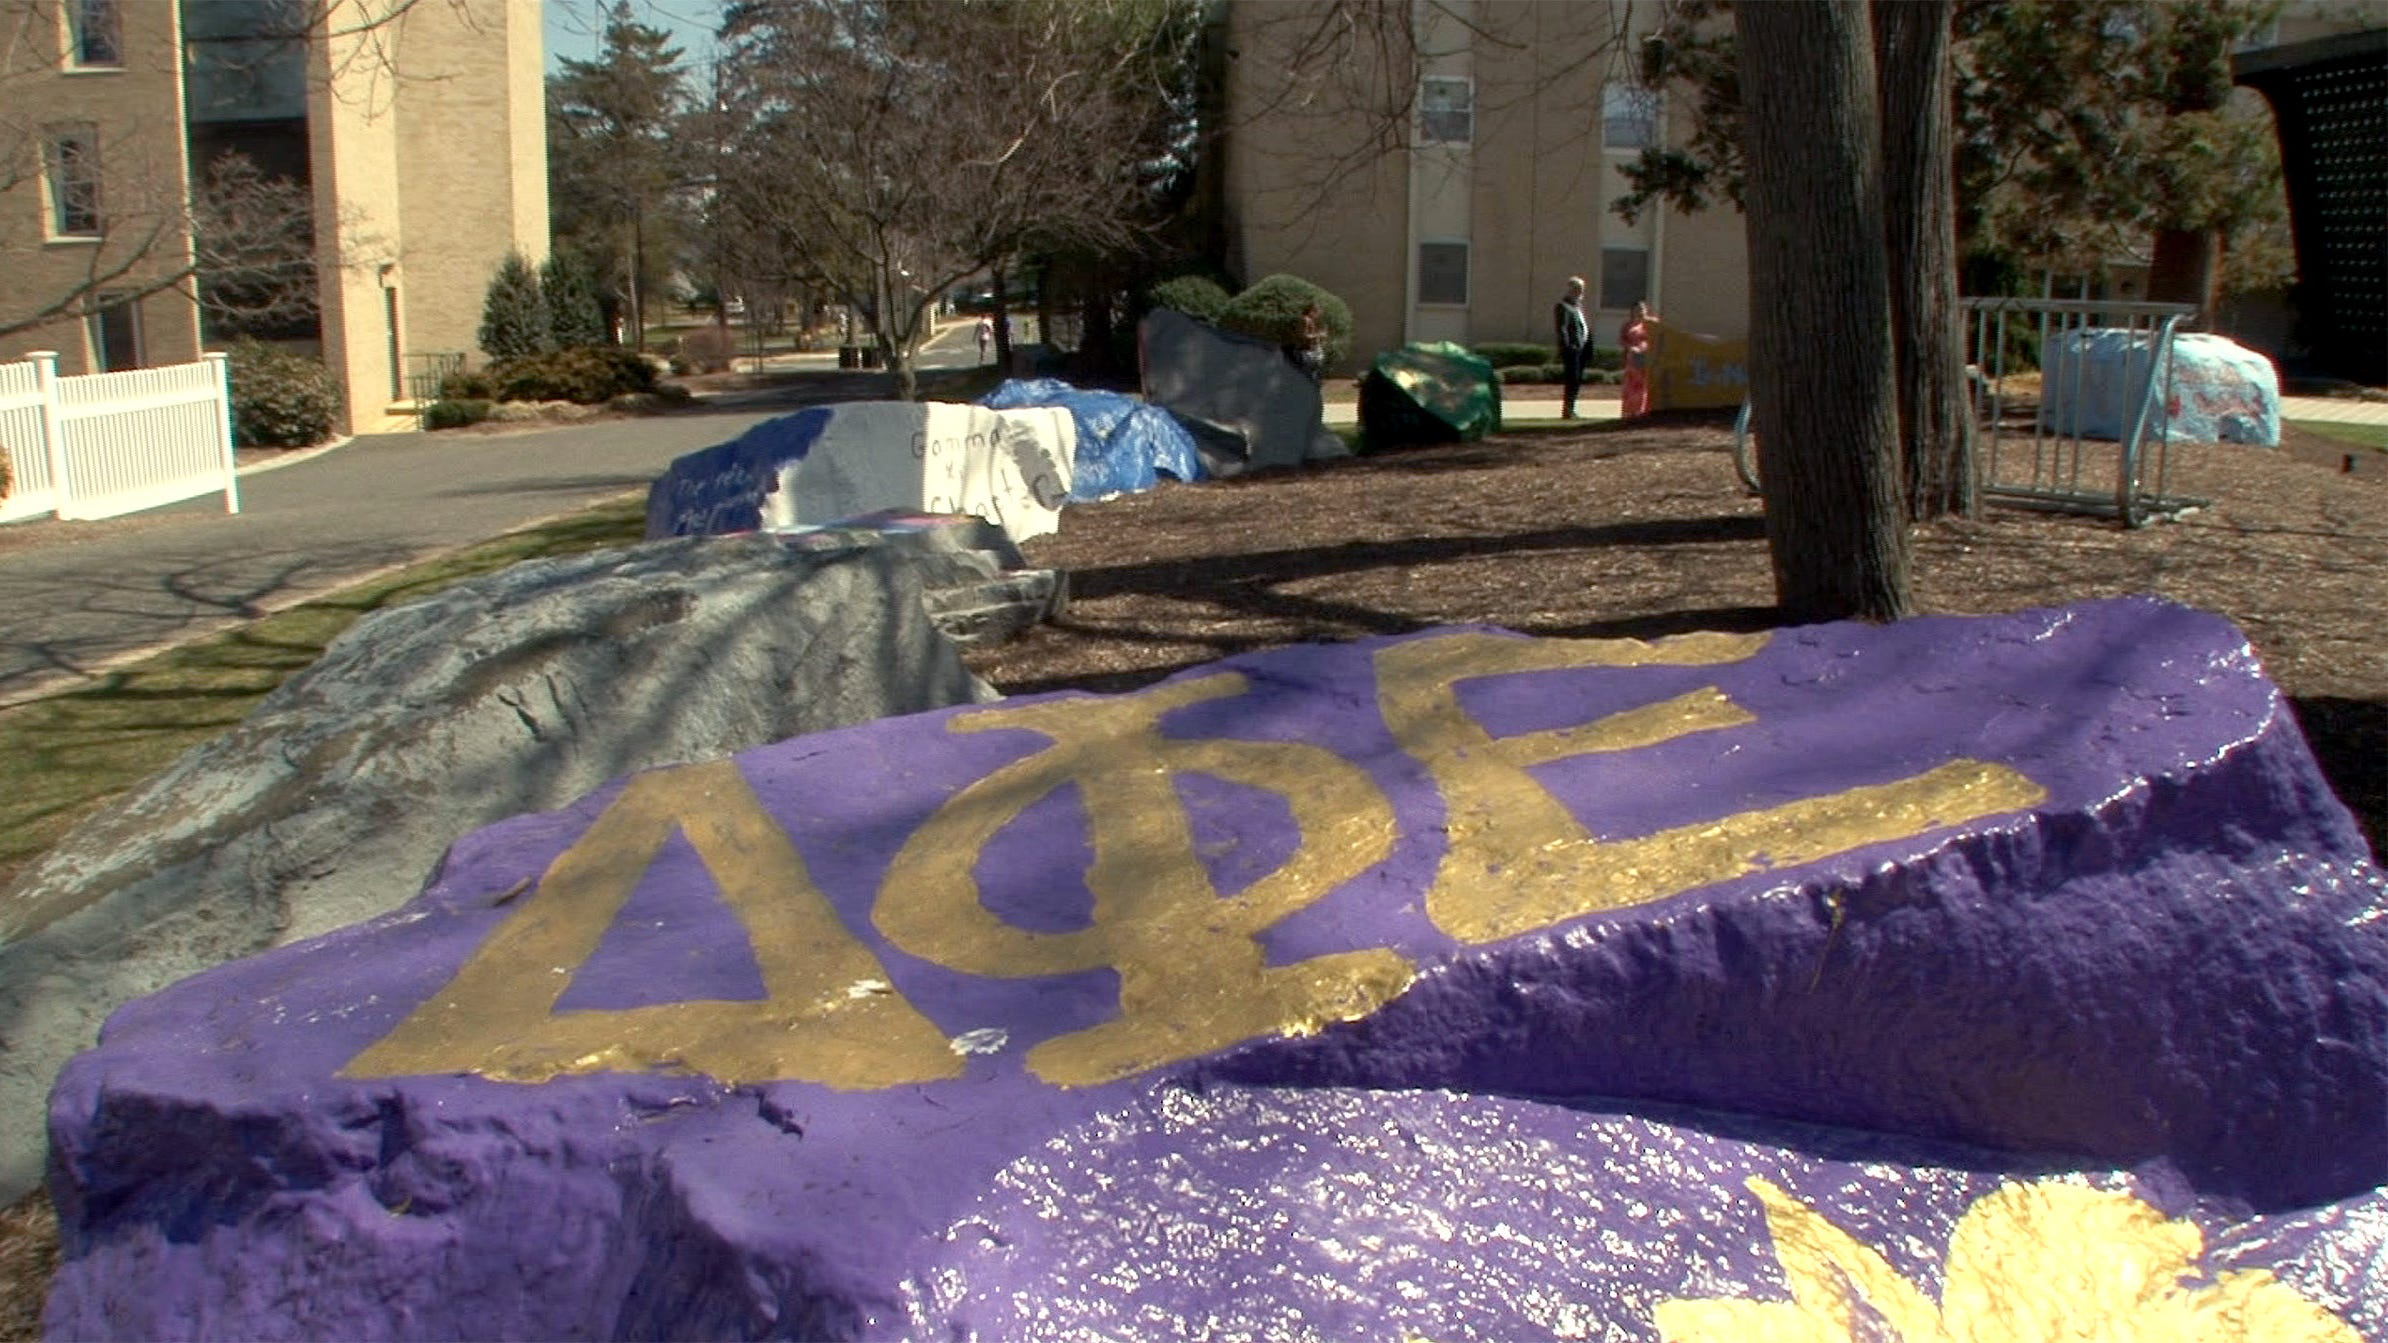 NJ college drinking ban: No hard alcohol for NJ fraternities, sororities after student deaths